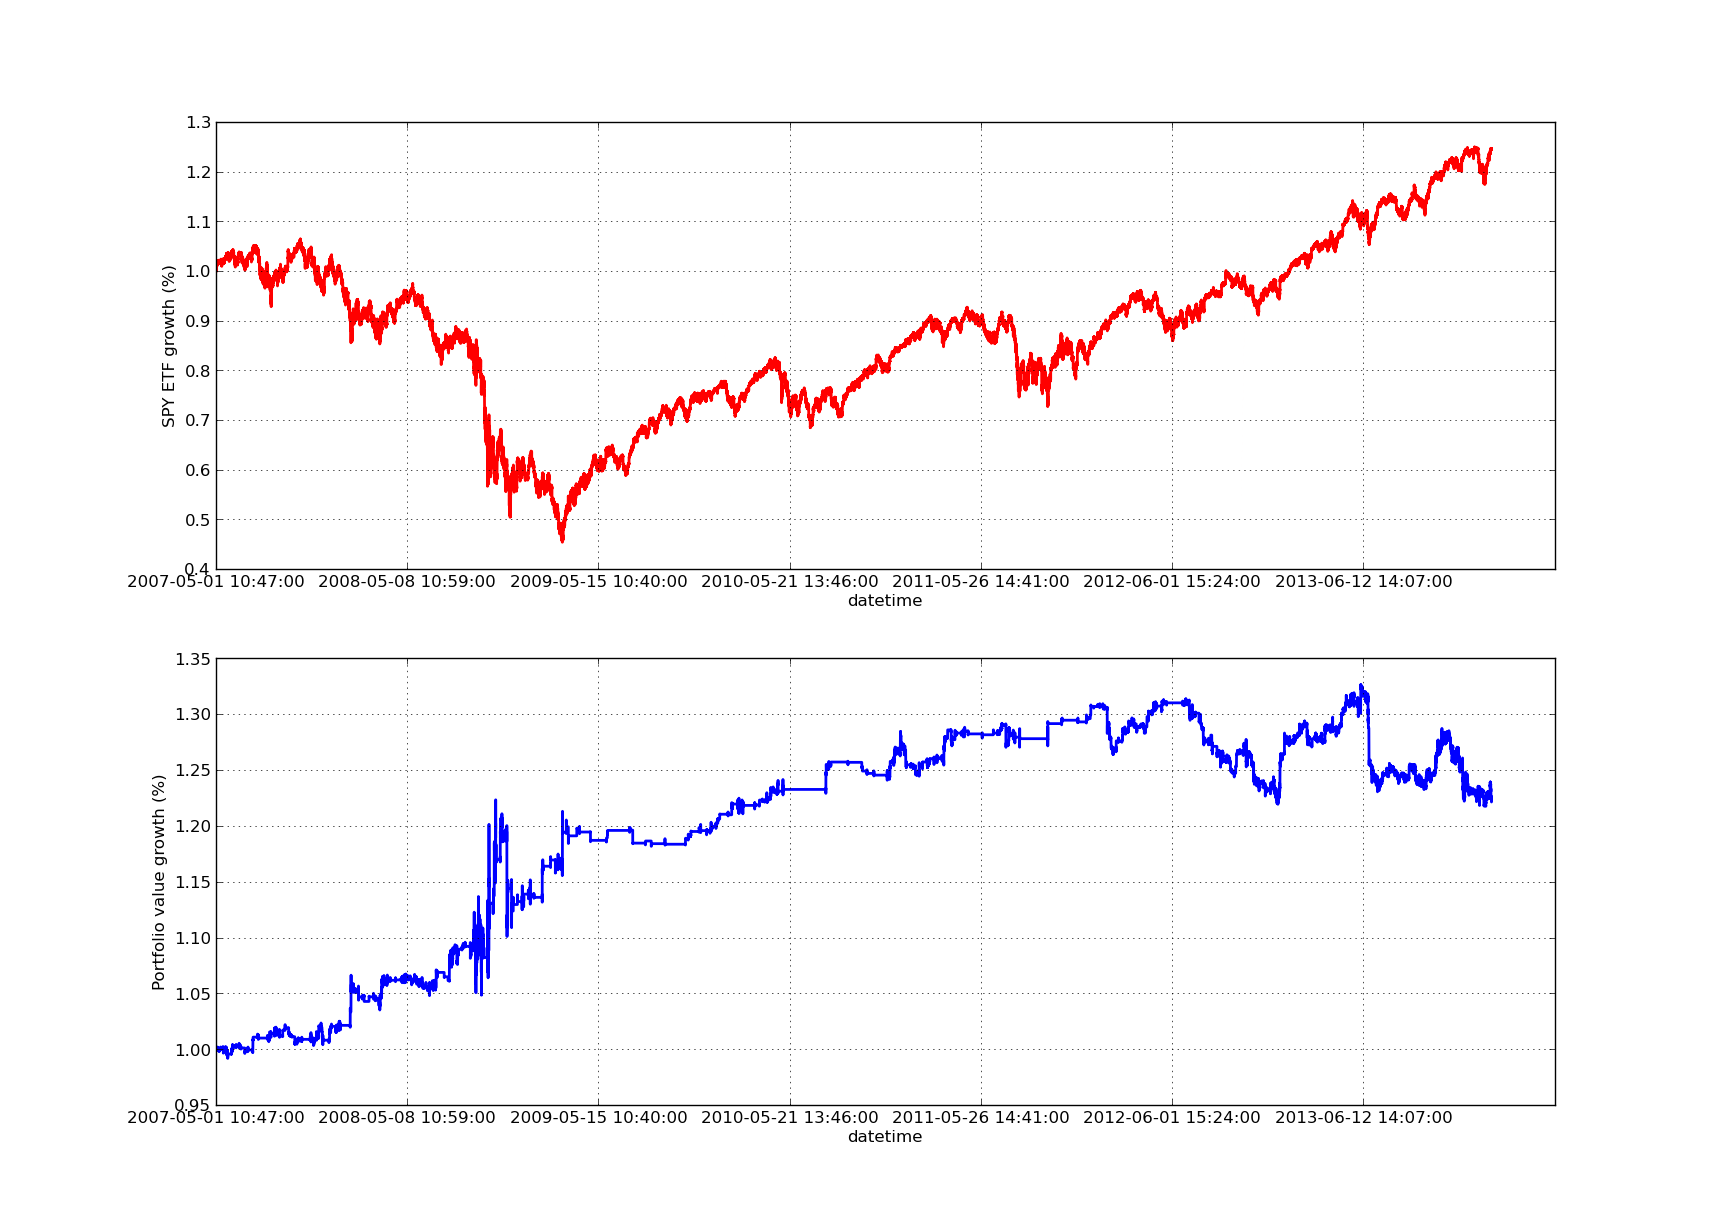 SPY-IWM linear regression hedge-ratio lookback period sensitivity analysis